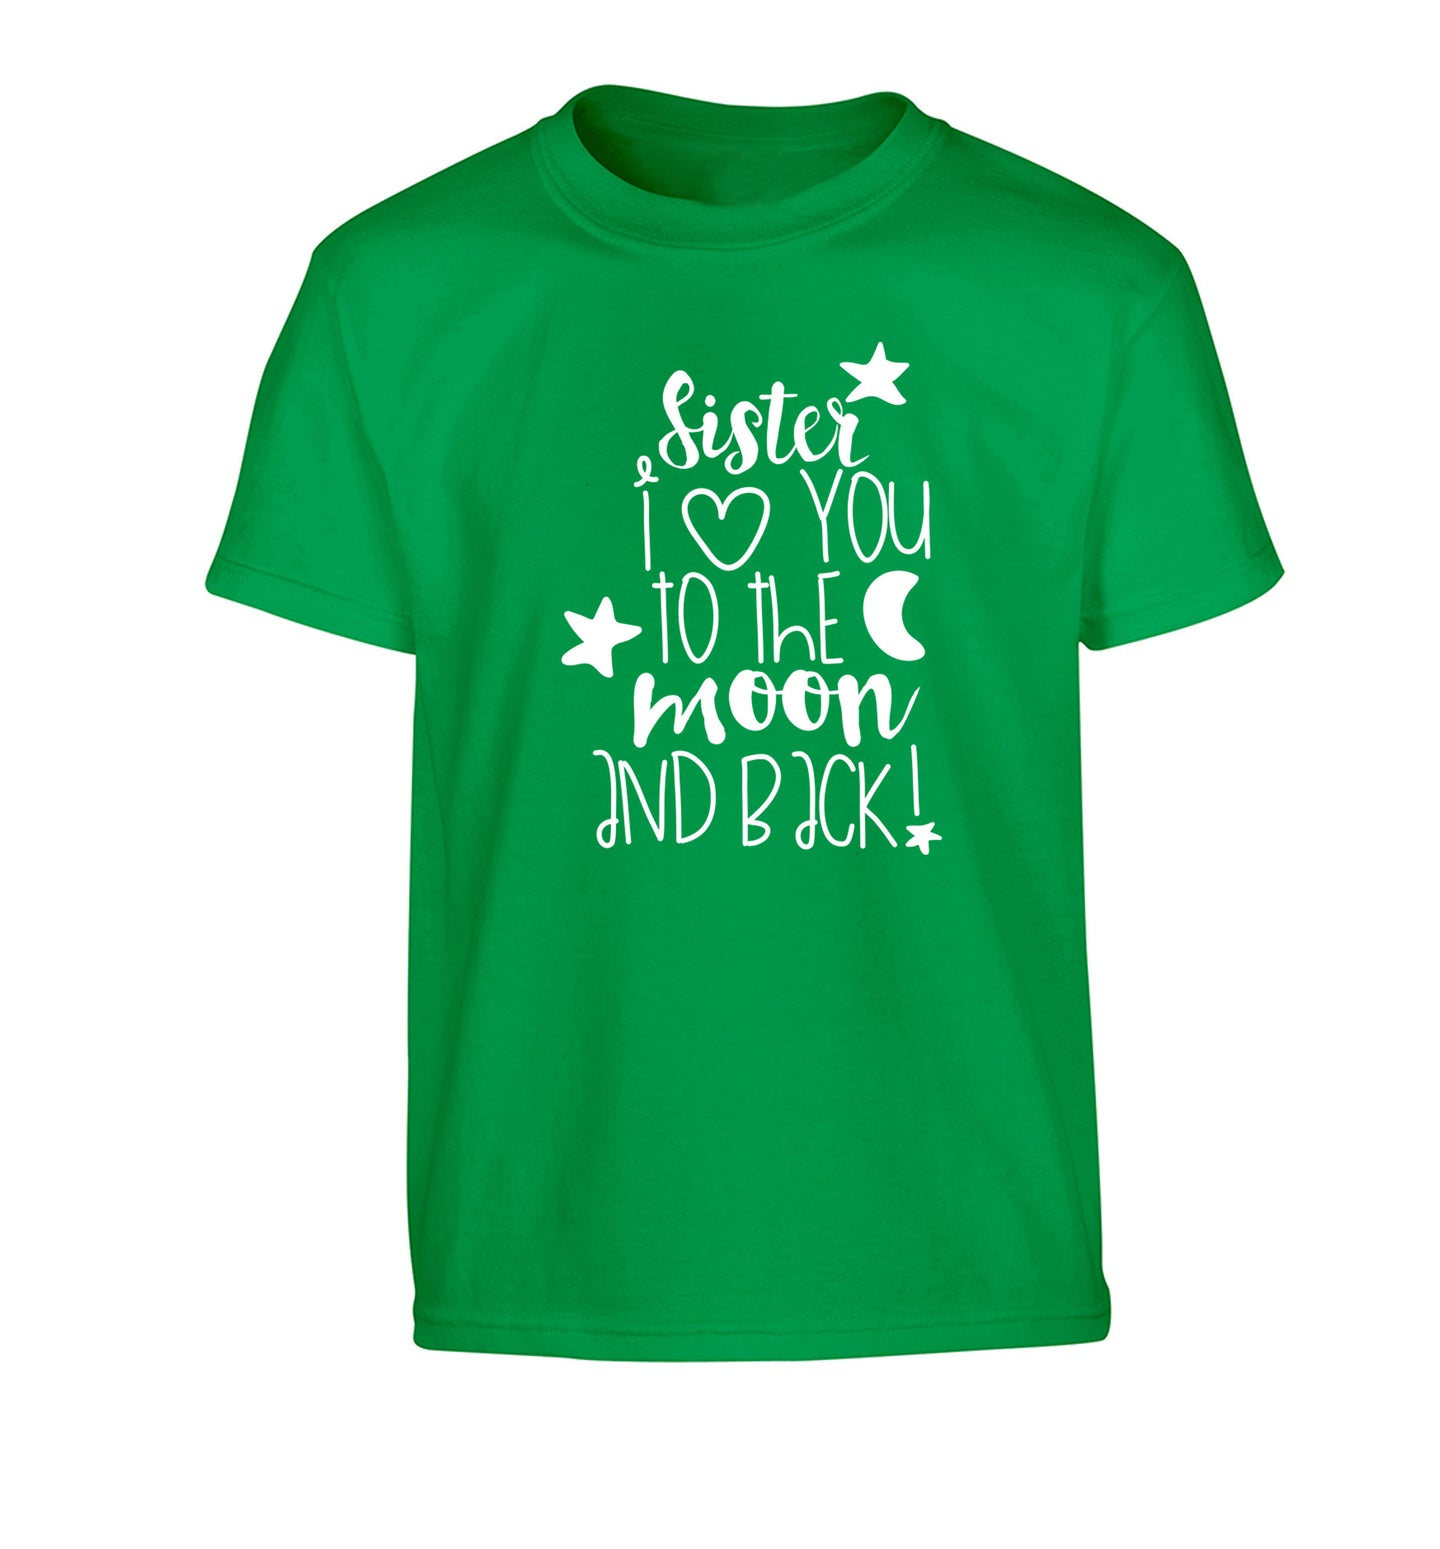 Sister I love you to the moon and back Children's green Tshirt 12-14 Years